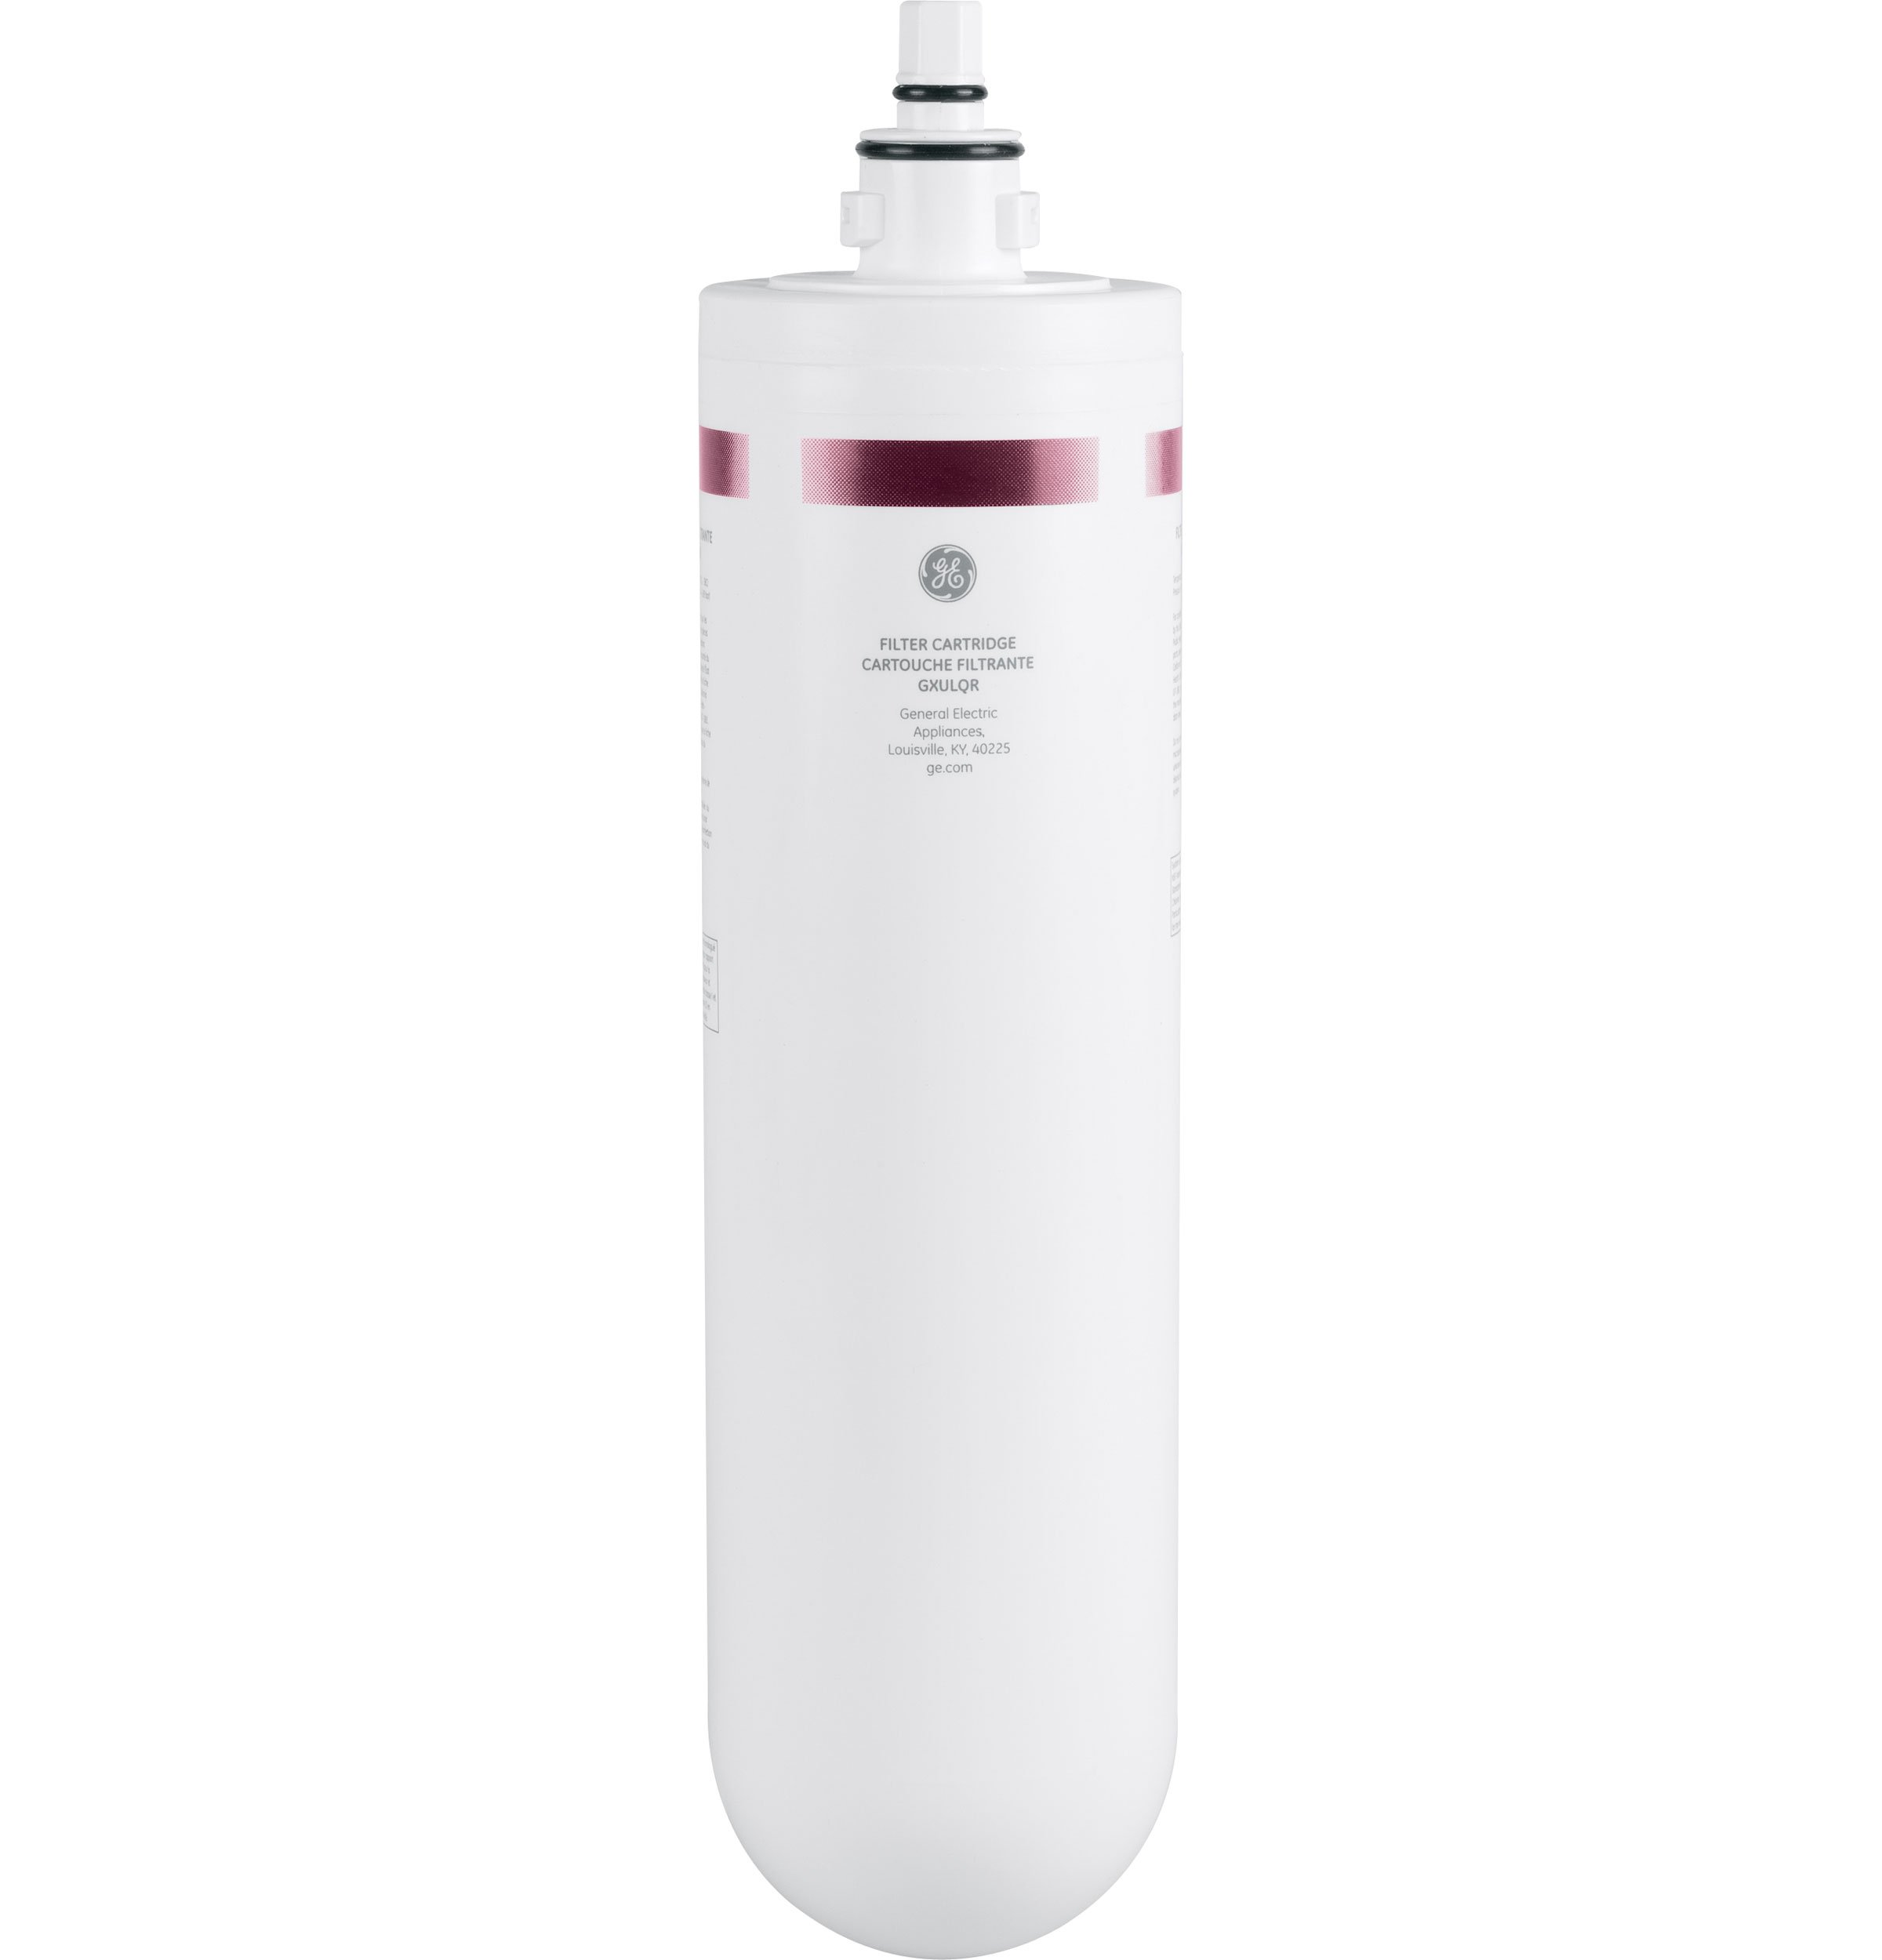 General Electric GXULQR Kitchen or Bath Replacement Filter by General Electric